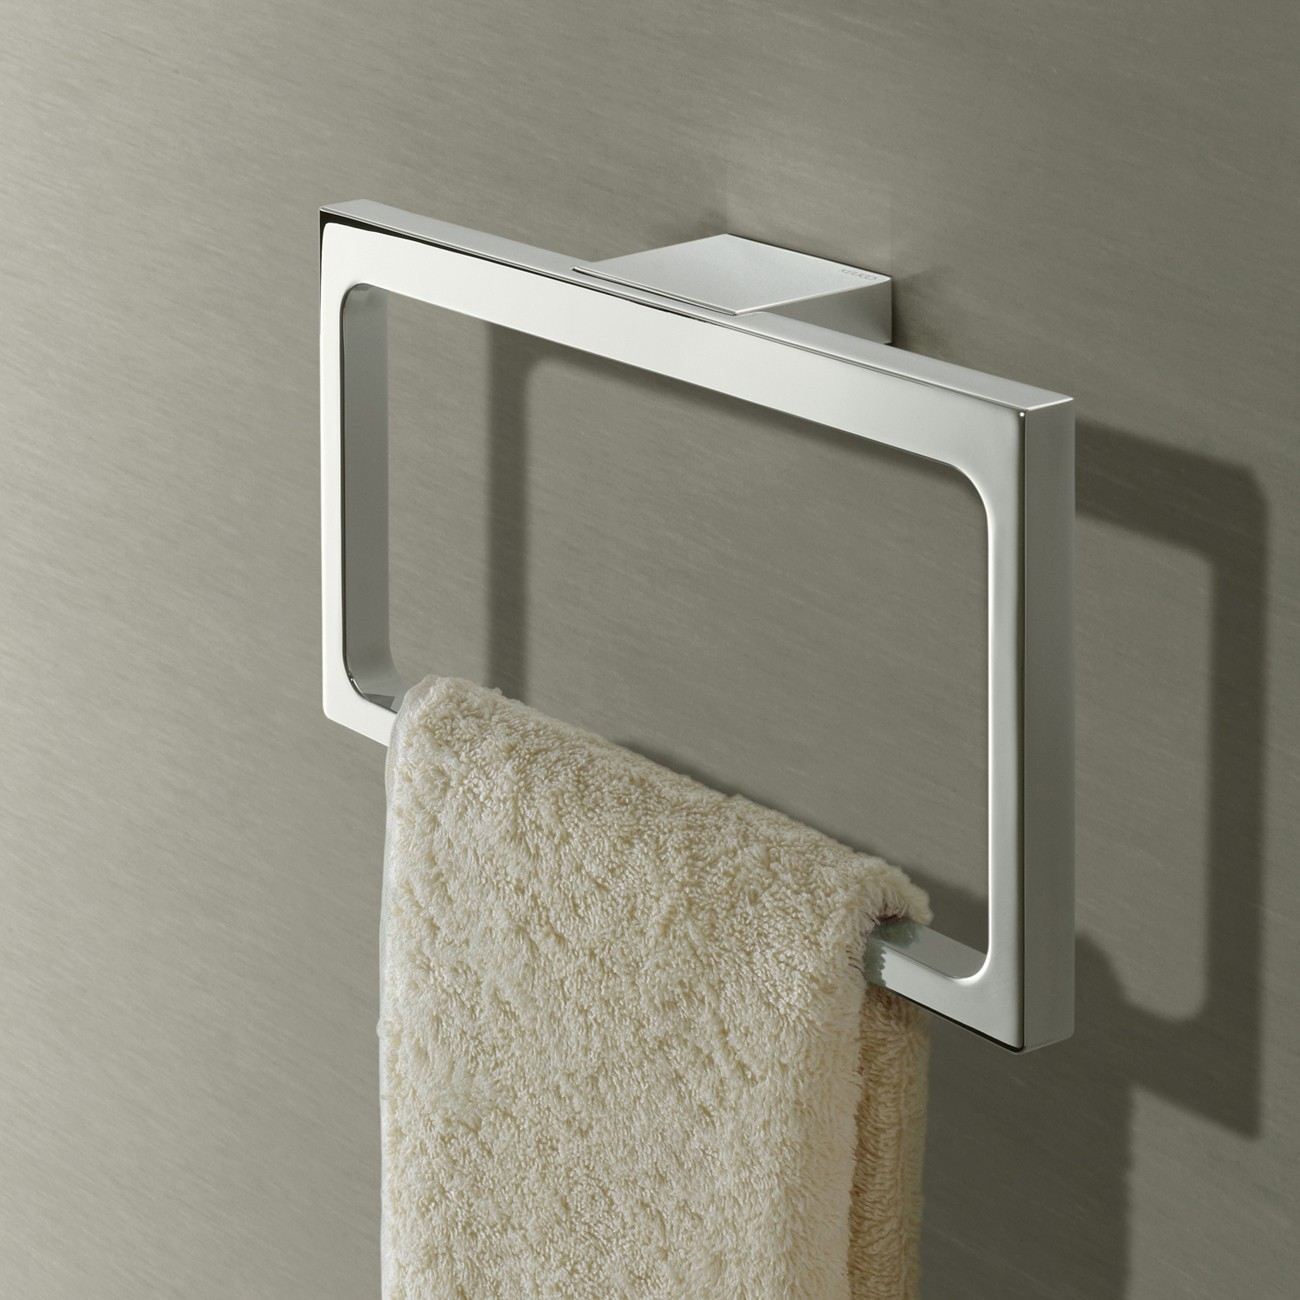 keuco_edition-11_bathroom-accessories_towel-rails_towel-ring_429208_2